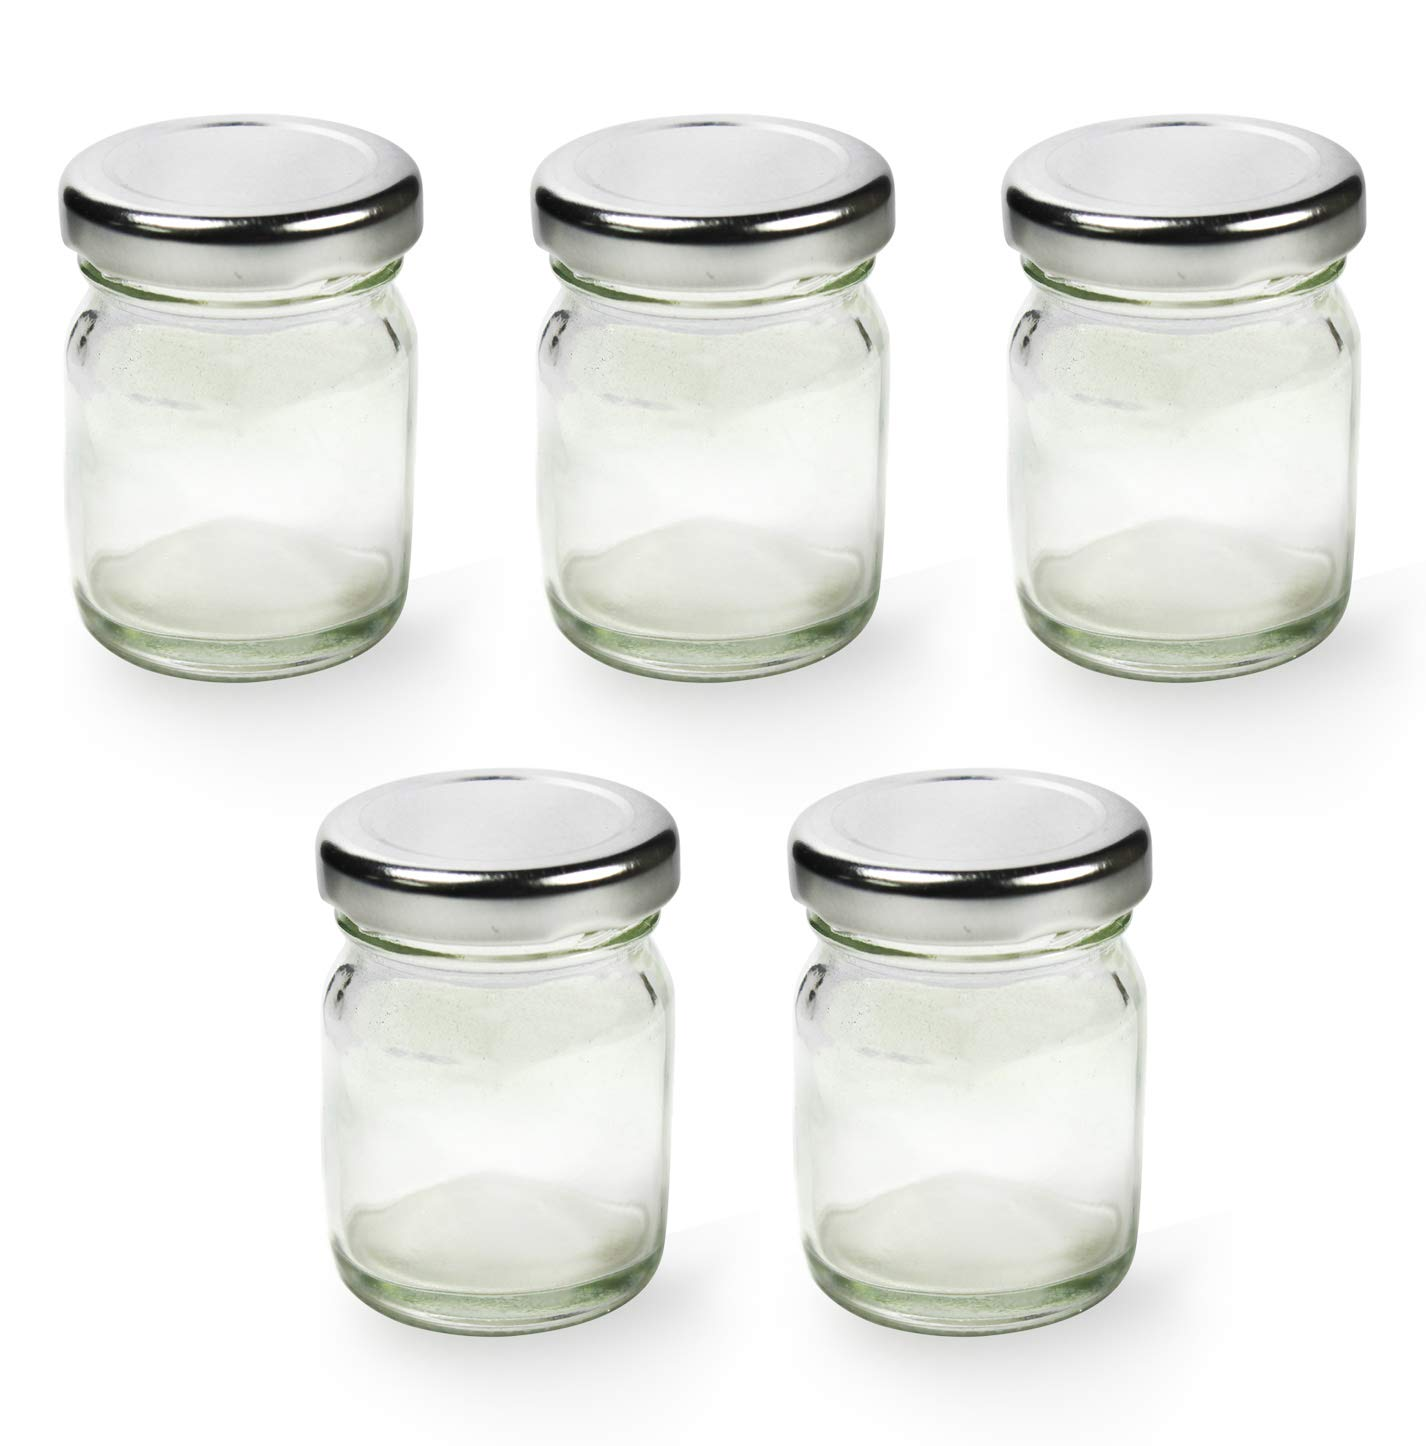 Superbazaar Glass Small Jar With Airtight And Rust-proof Cap 60 Ml - Transparent (set Of 5)